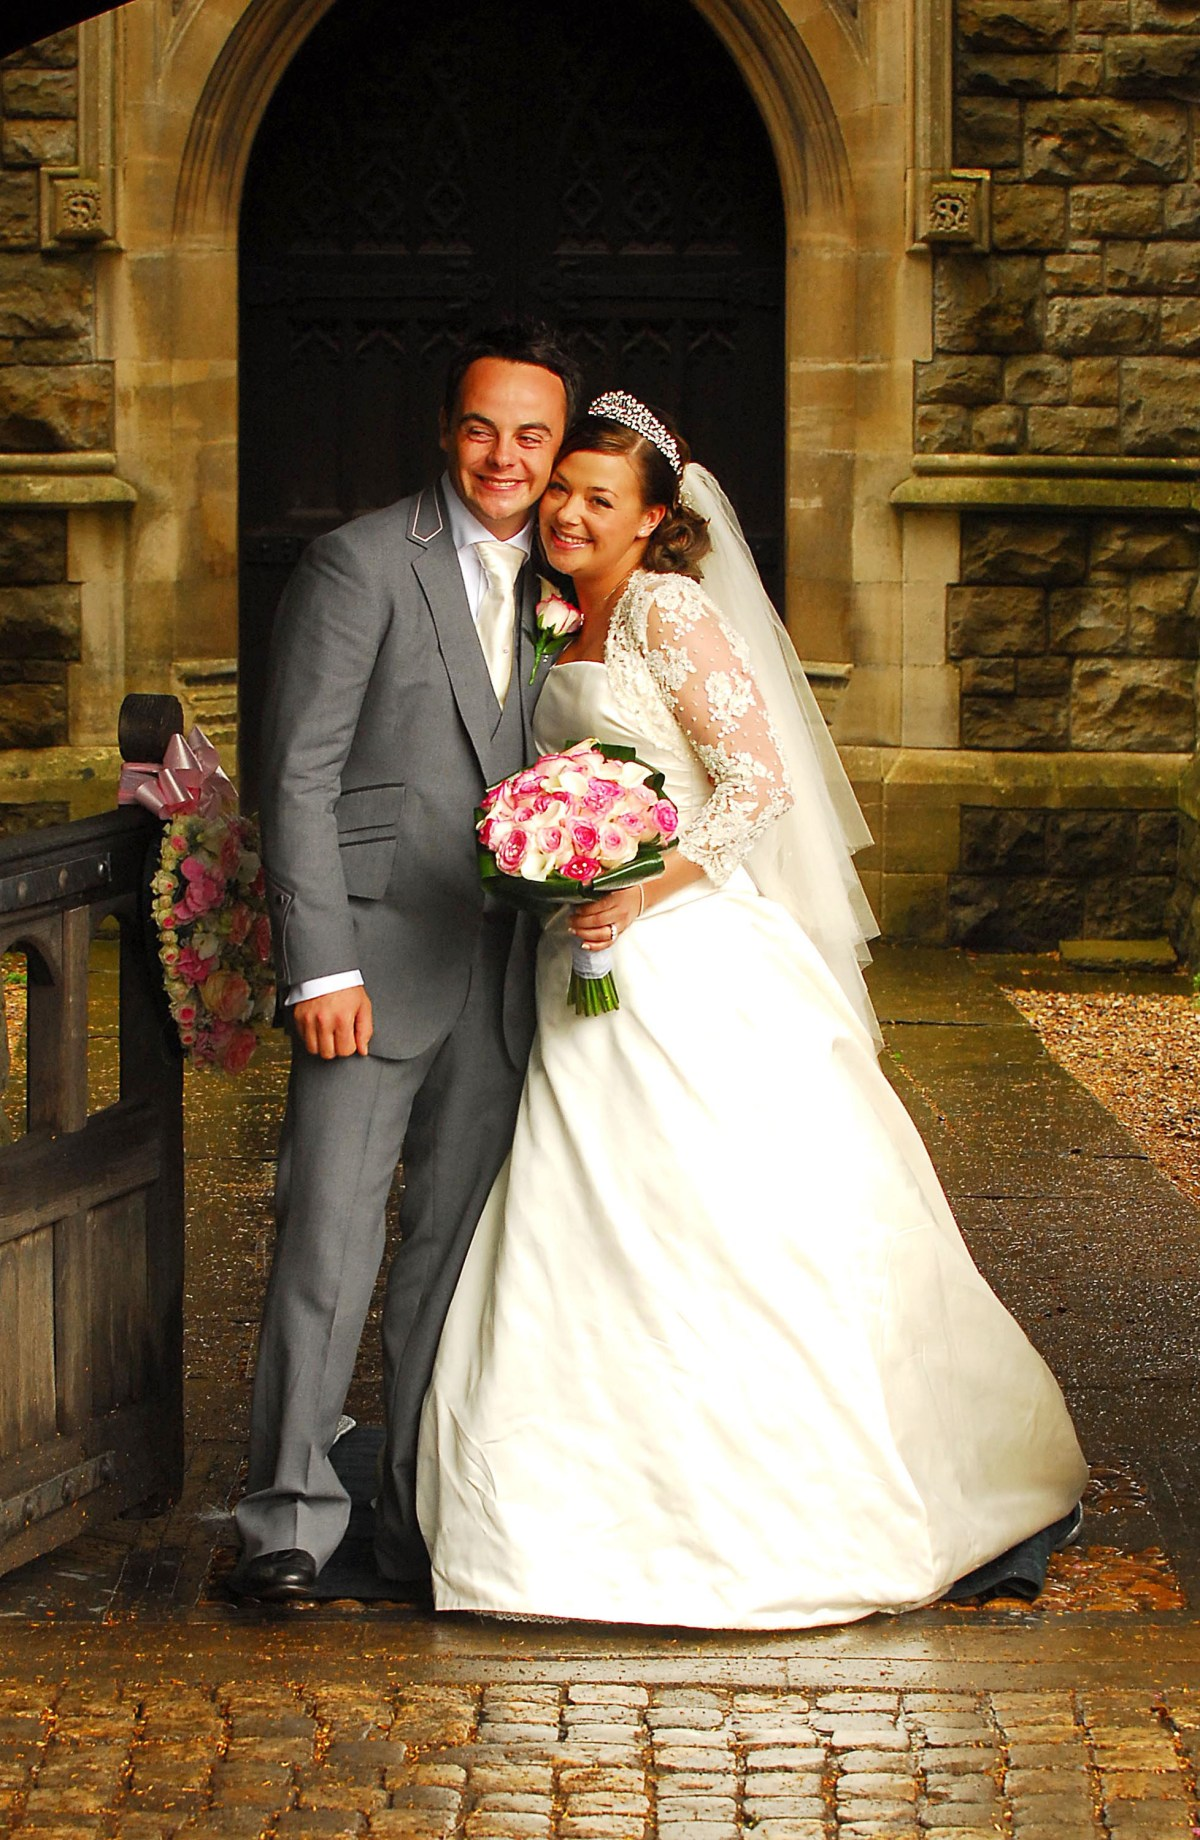 Ant McPartlin and Lisa Armstrong pictured on their wedding day on July 22, 2006